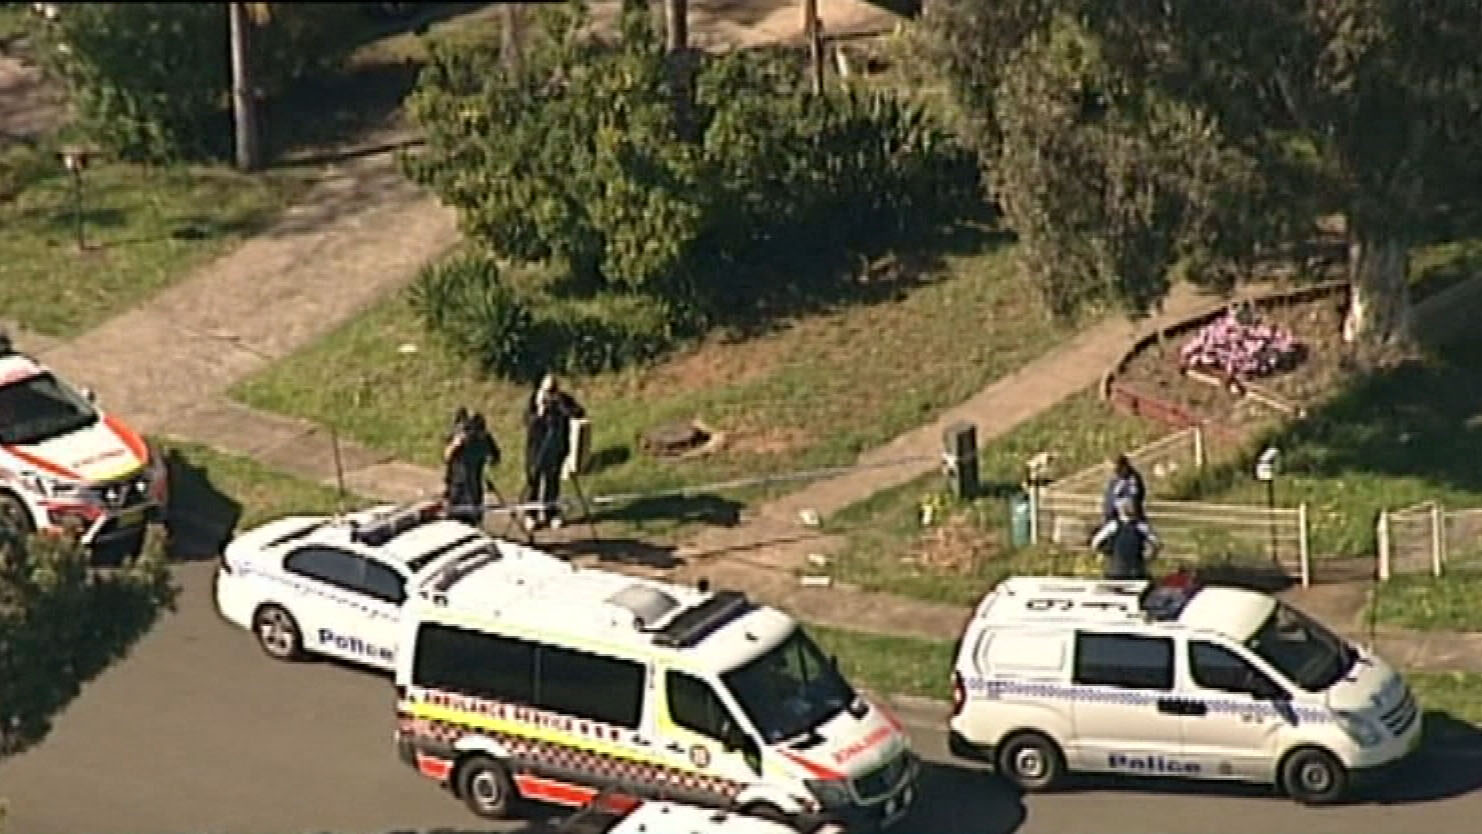 Two offenders are involved, police said. (9NEWS)